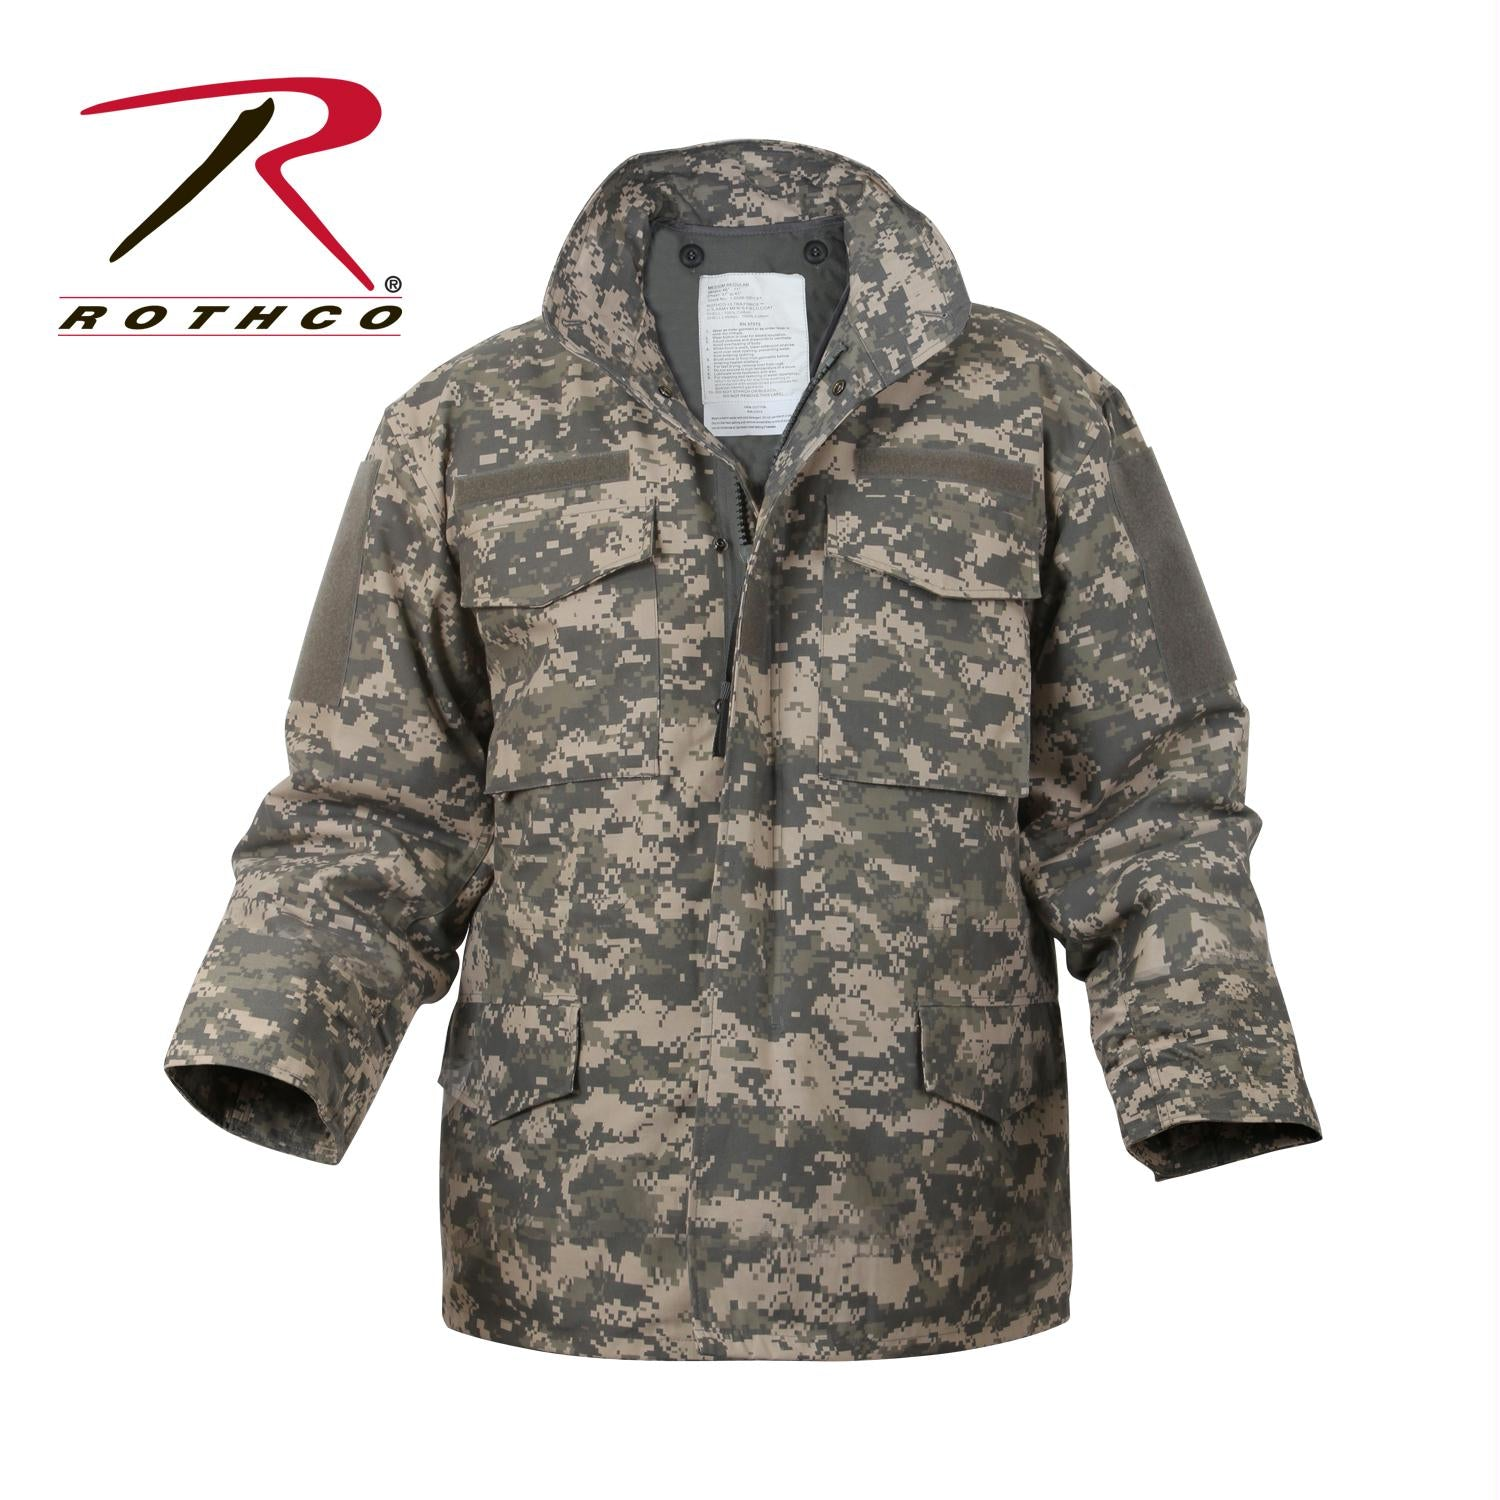 Rothco Digital Camo M-65 Field Jacket - XL